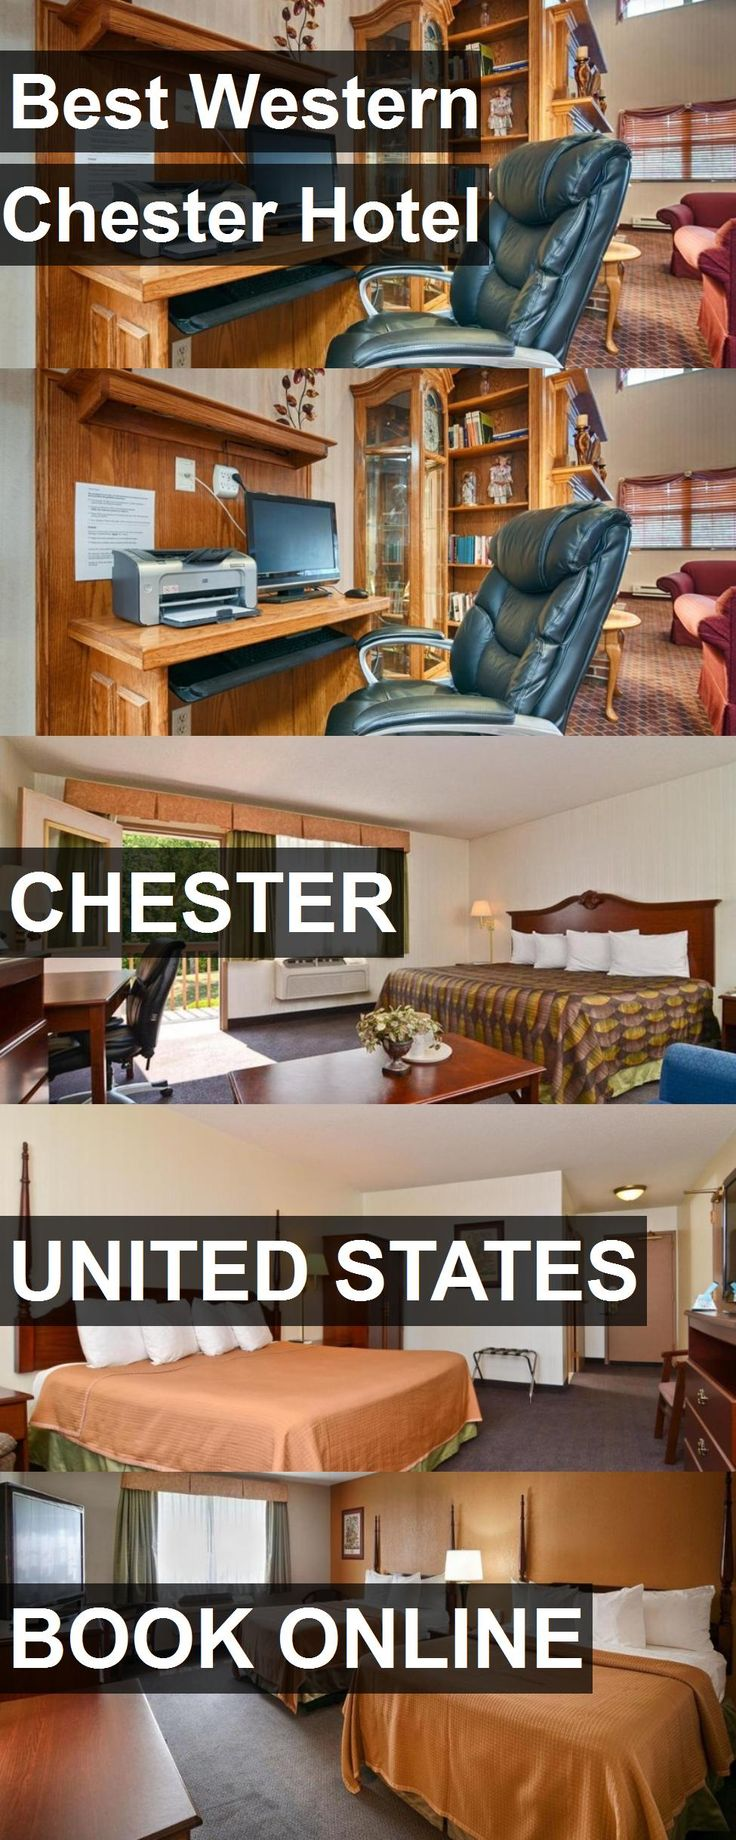 Hotel Best Western Chester Hotel in Chester, United States. For more information, photos, reviews and best prices please follow the link. #UnitedStates #Chester #BestWesternChesterHotel #hotel #travel #vacation